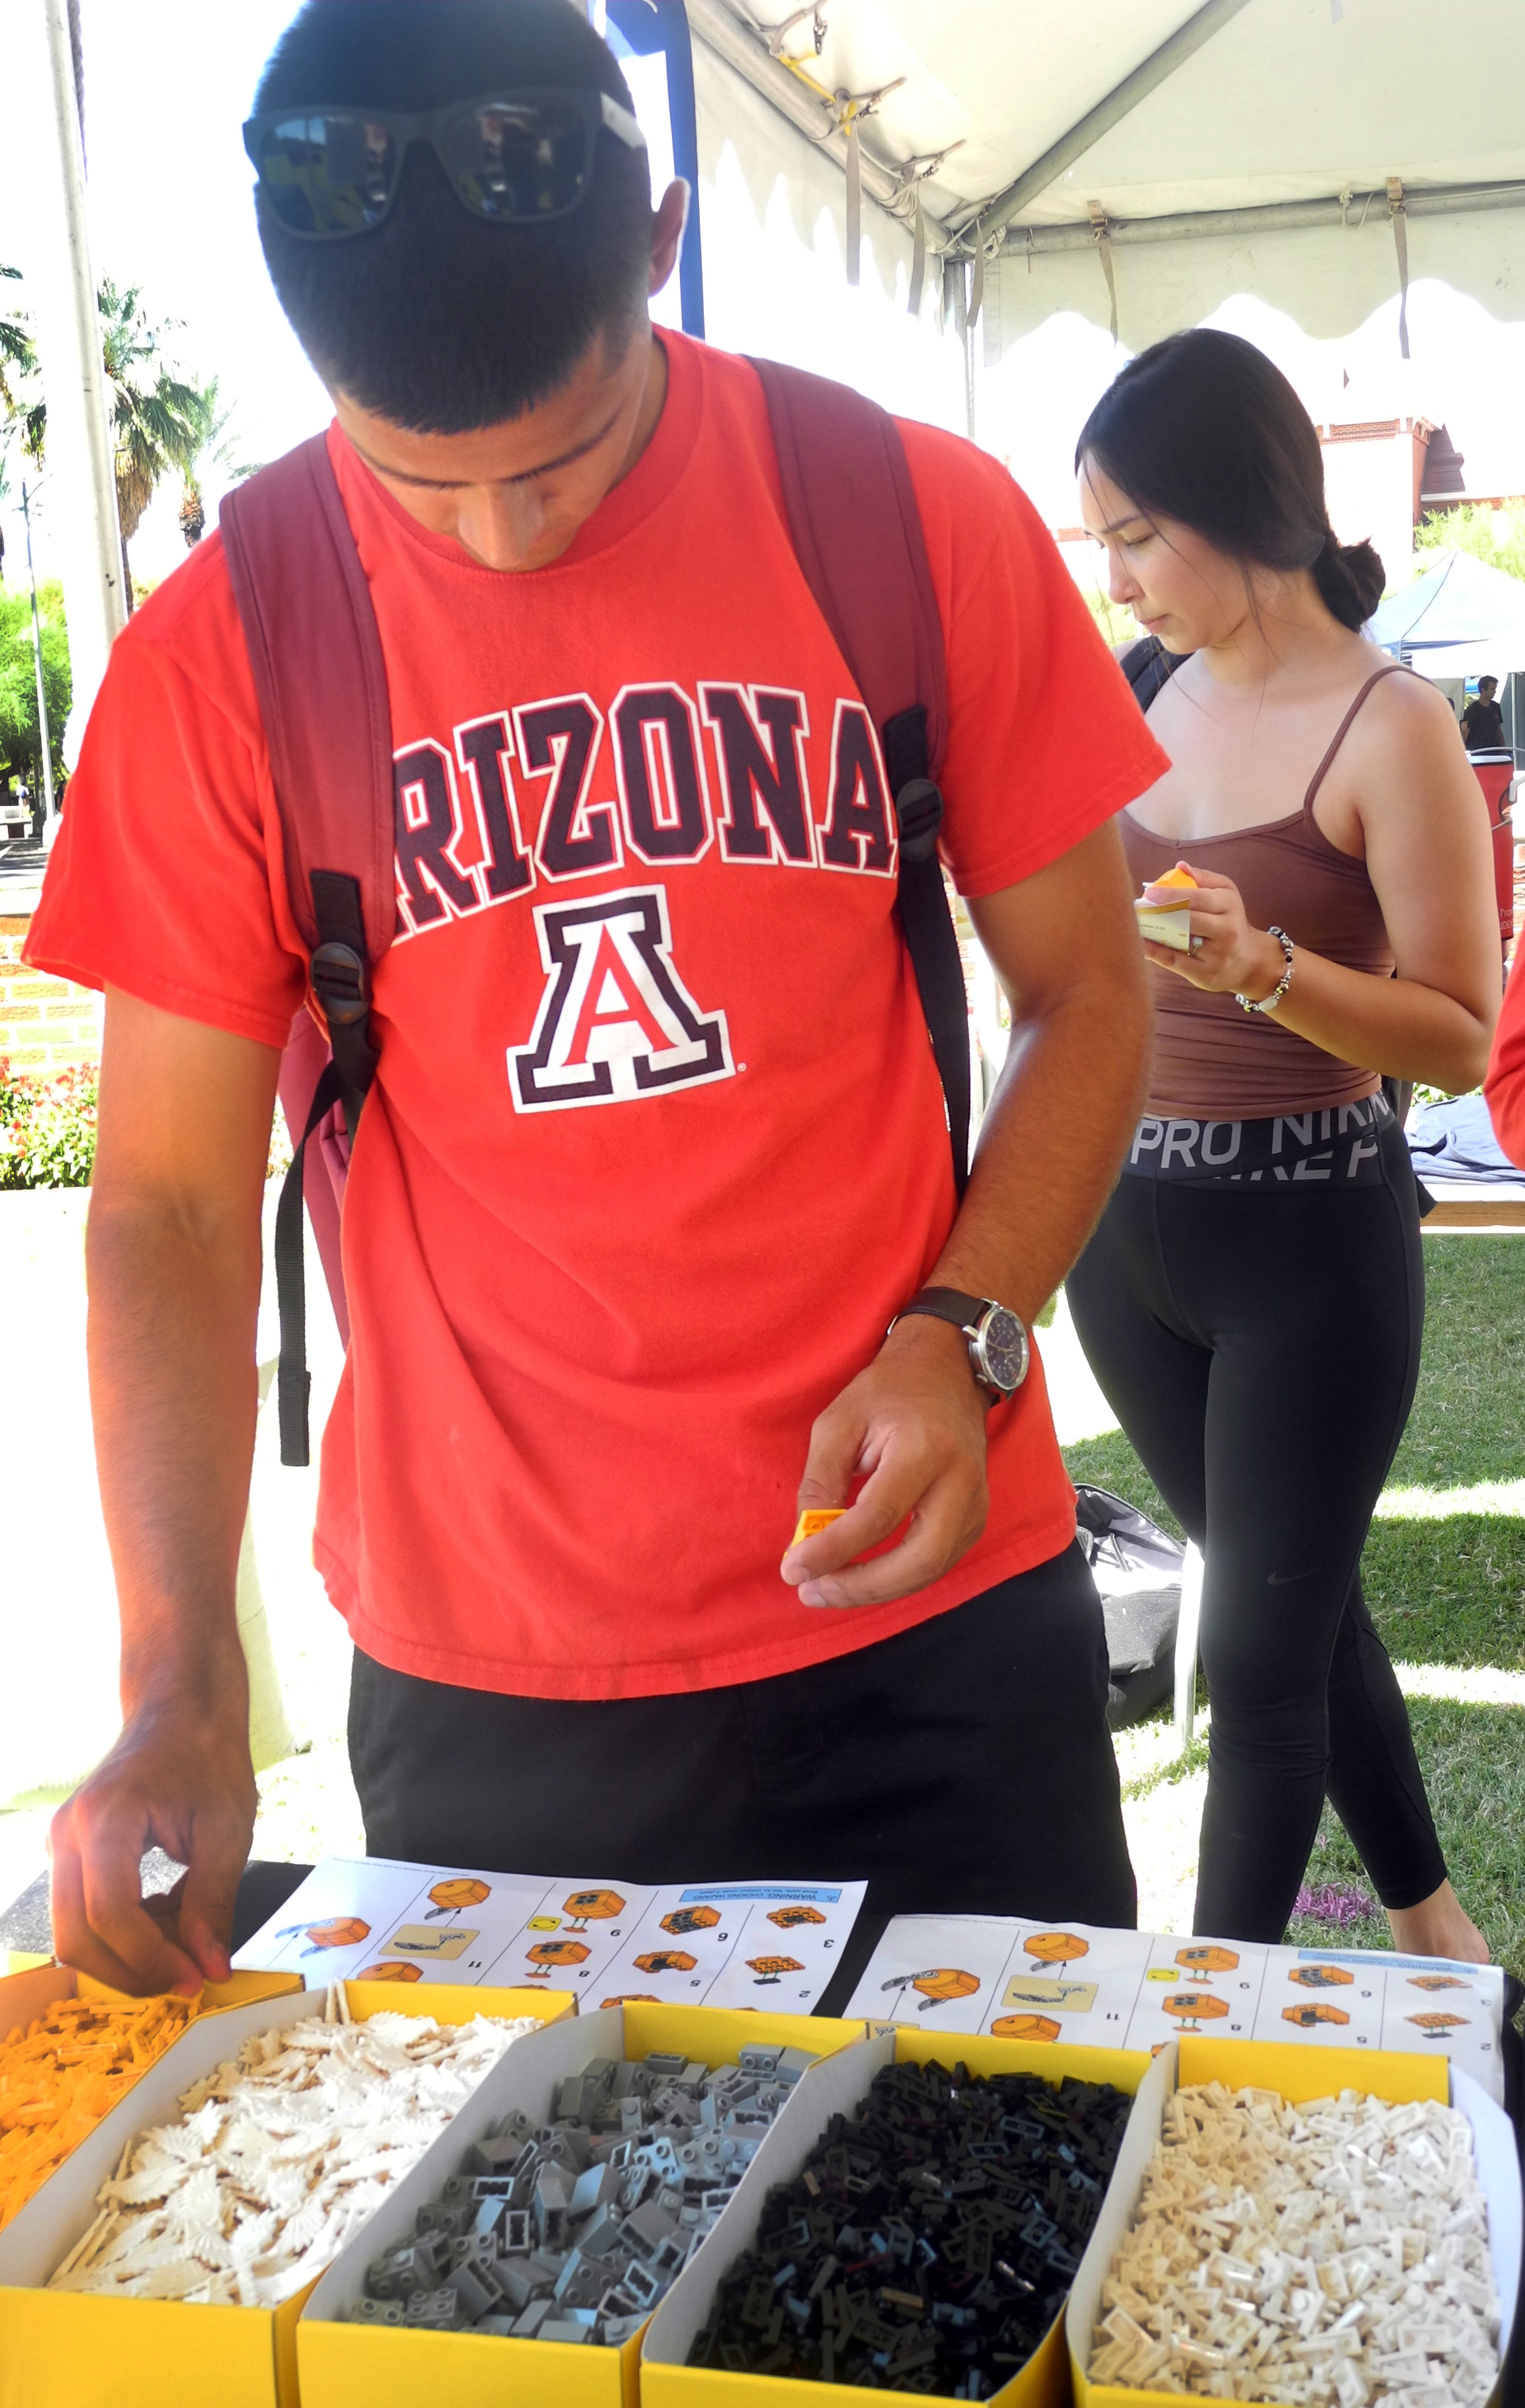 A University of Arizona student works to build a Golden Snitch from LEGO bricks during a Back to Hogwarts event at the school.